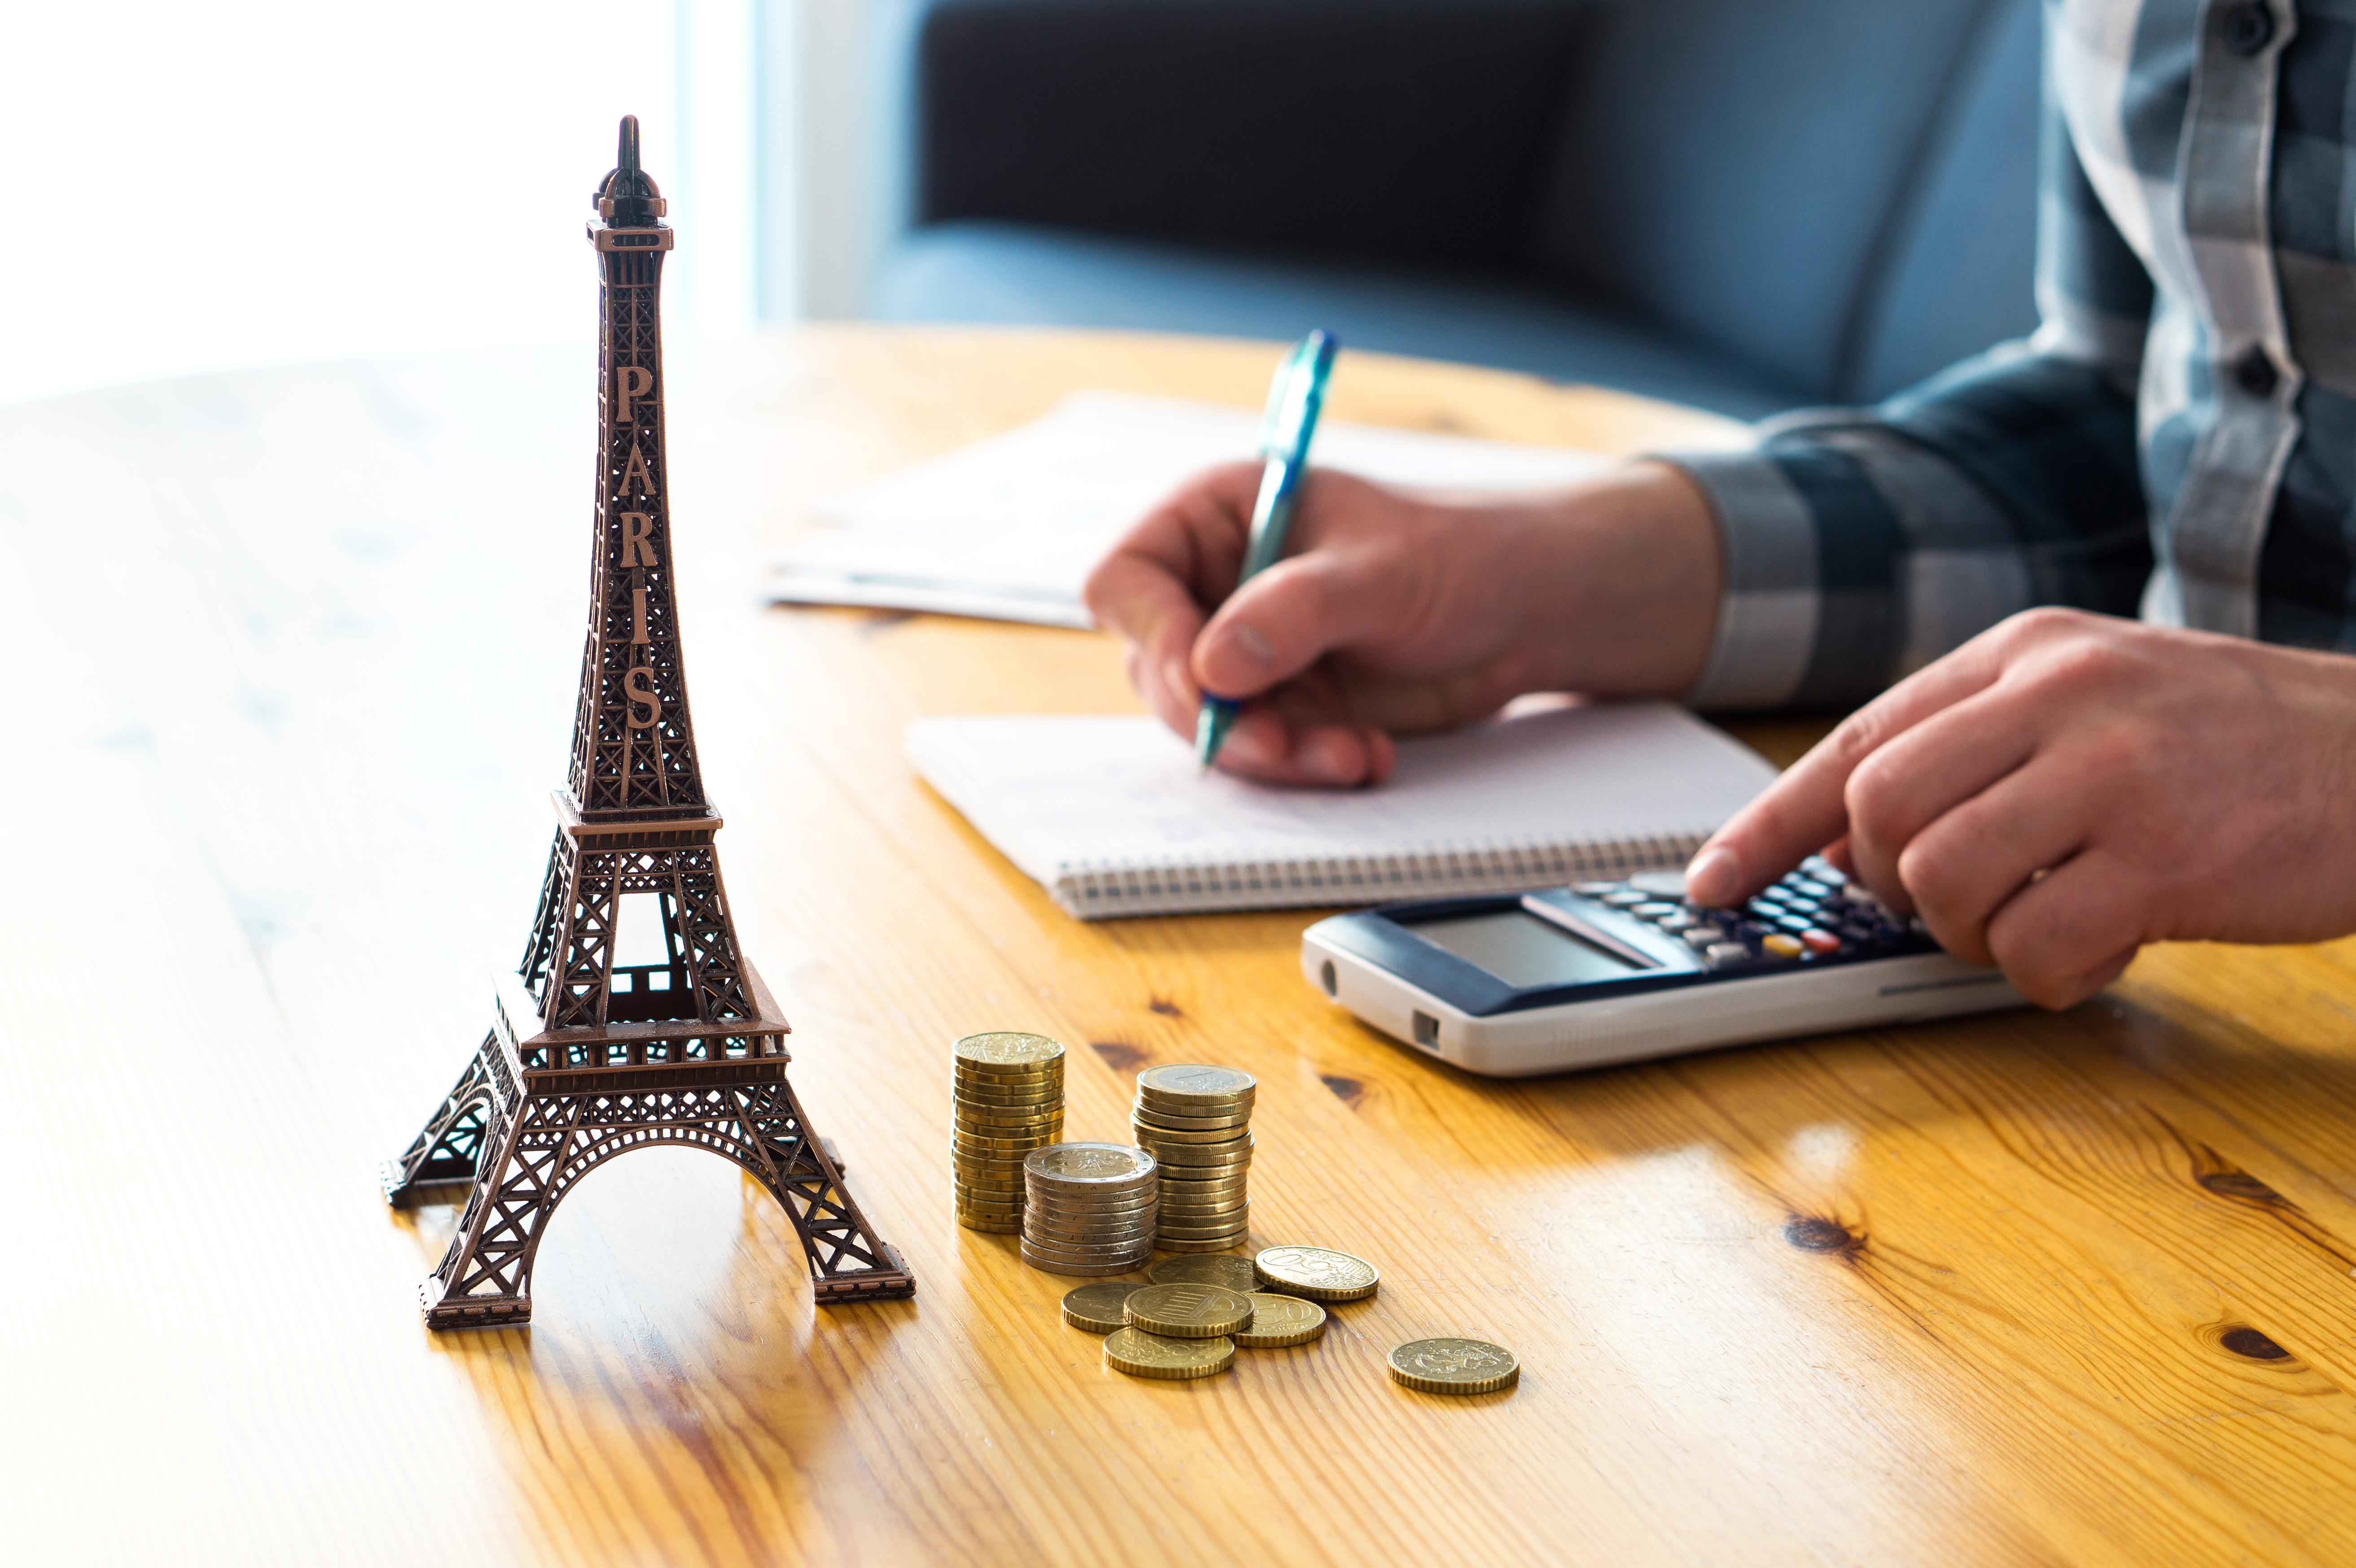 Eiffel Tower and Coins on Travel Agents Desk